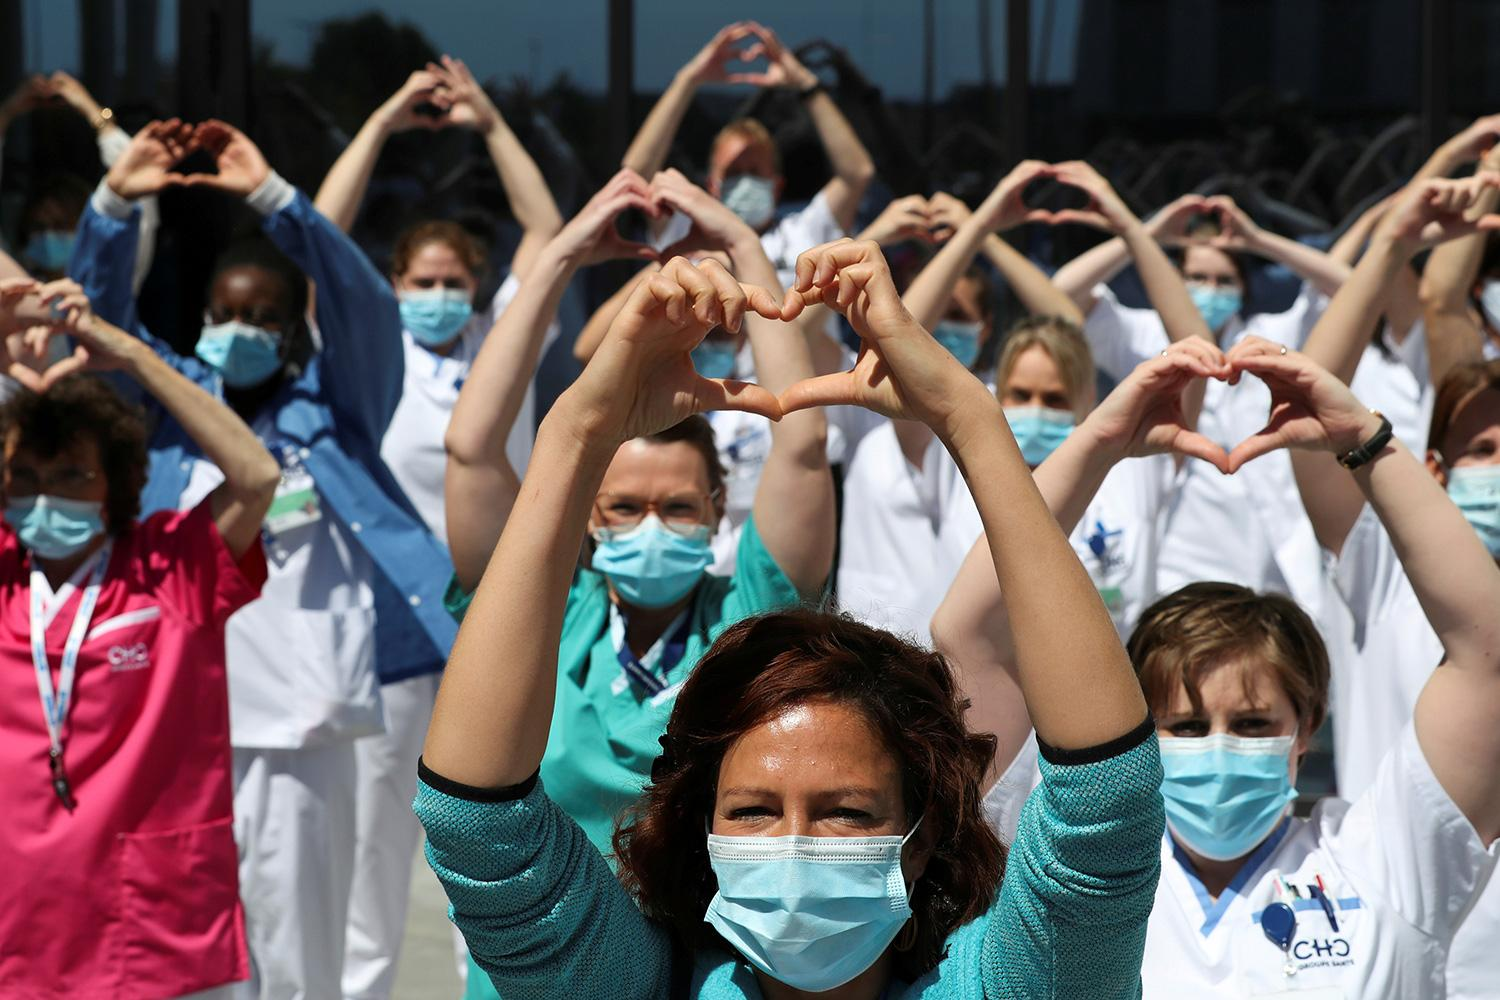 """Health-care workers, nurses, and doctors, protesting under the movement called """"Take Care of Care"""" during the coronavirus crisis, at the MontLegia CHC Hospital in Liege, Belgium, on May 15, 2020. The photo shows a large number of health workers standing together and holding up a heart symbol above their heads. REUTERS/Yves Herman"""